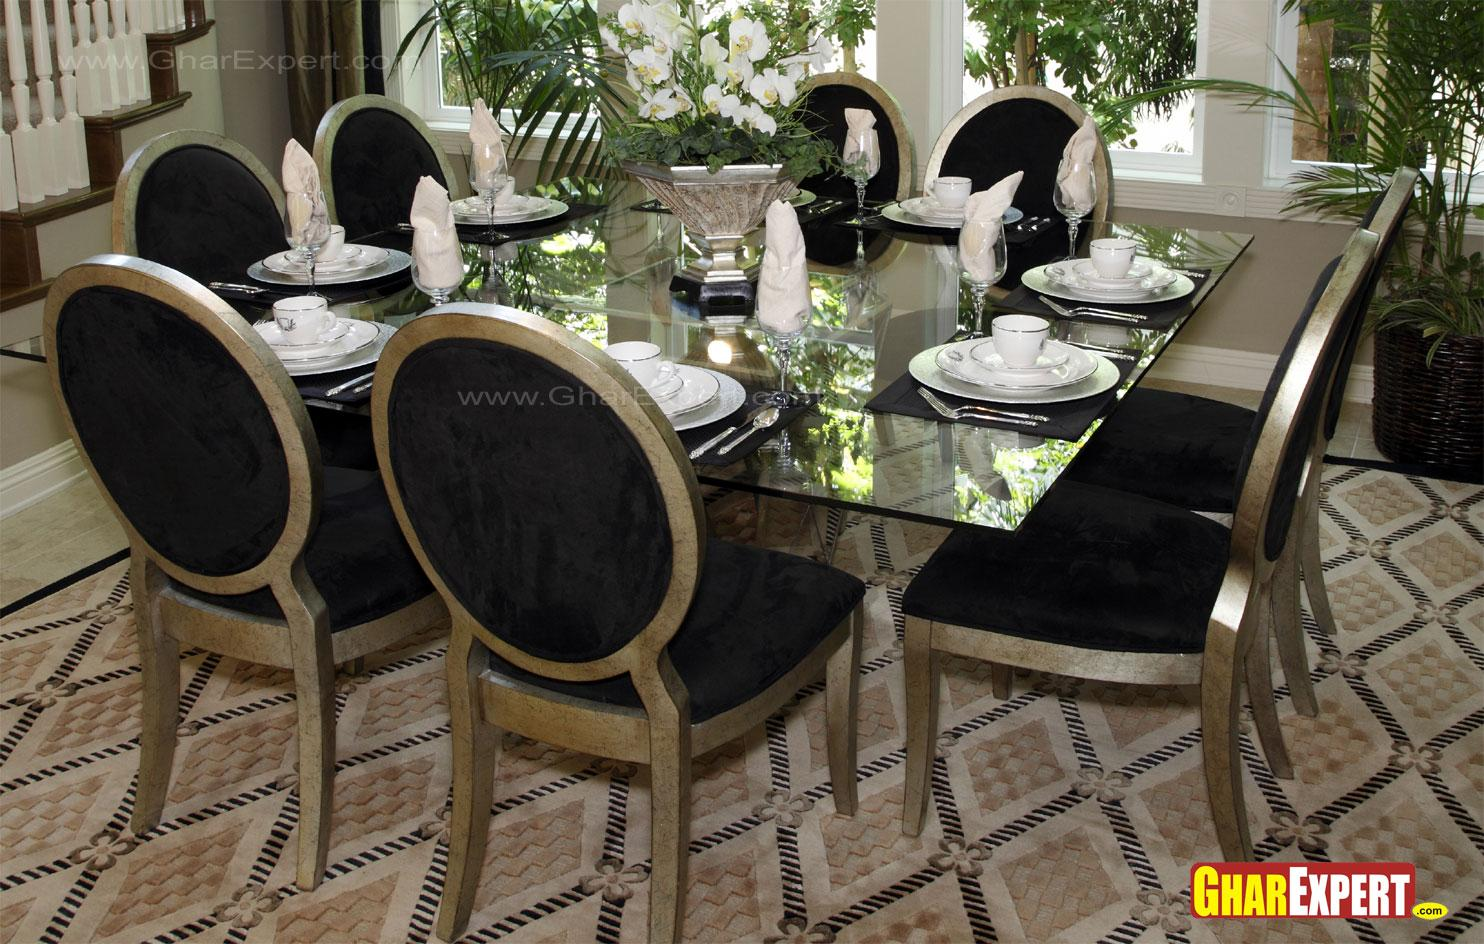 Silver frame dining room furniture gharexpert for Decolam designs for living room